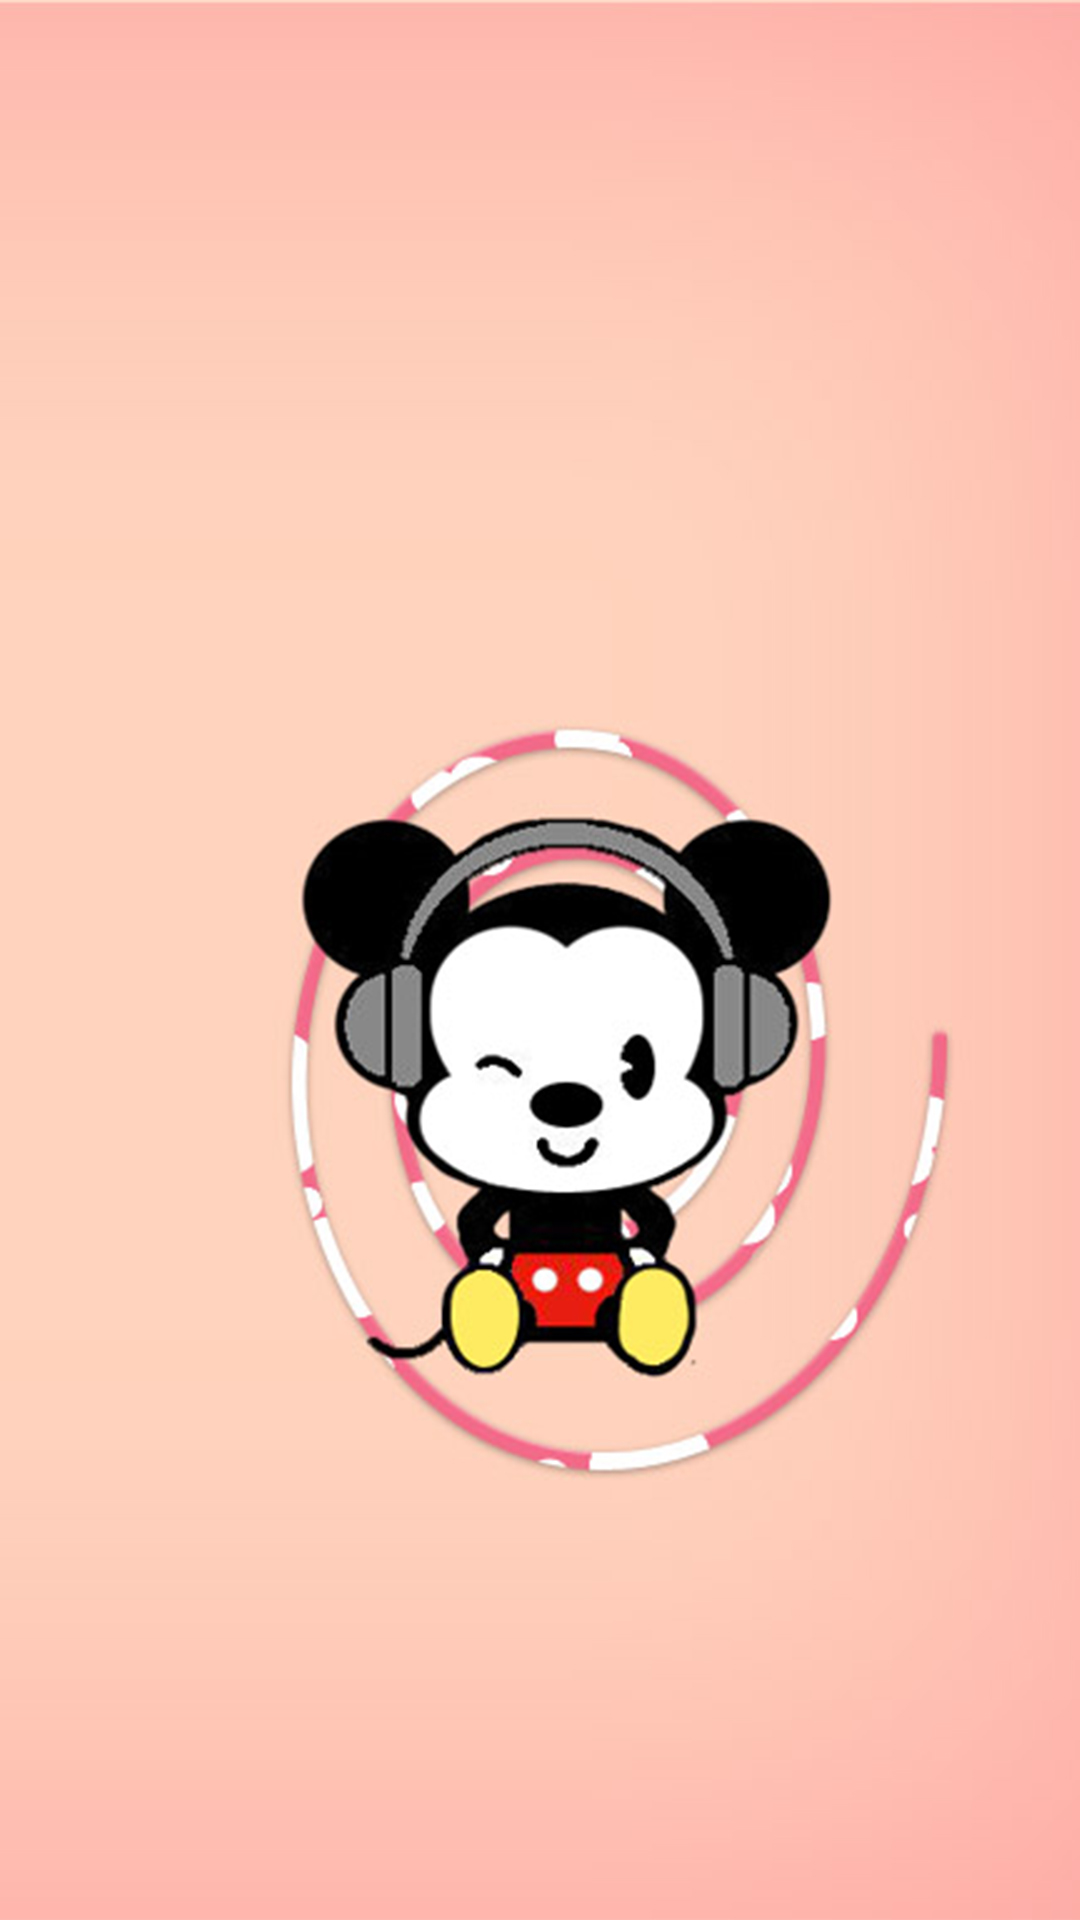 mickey mouse wallpapers for iphone | iphone wallpaper